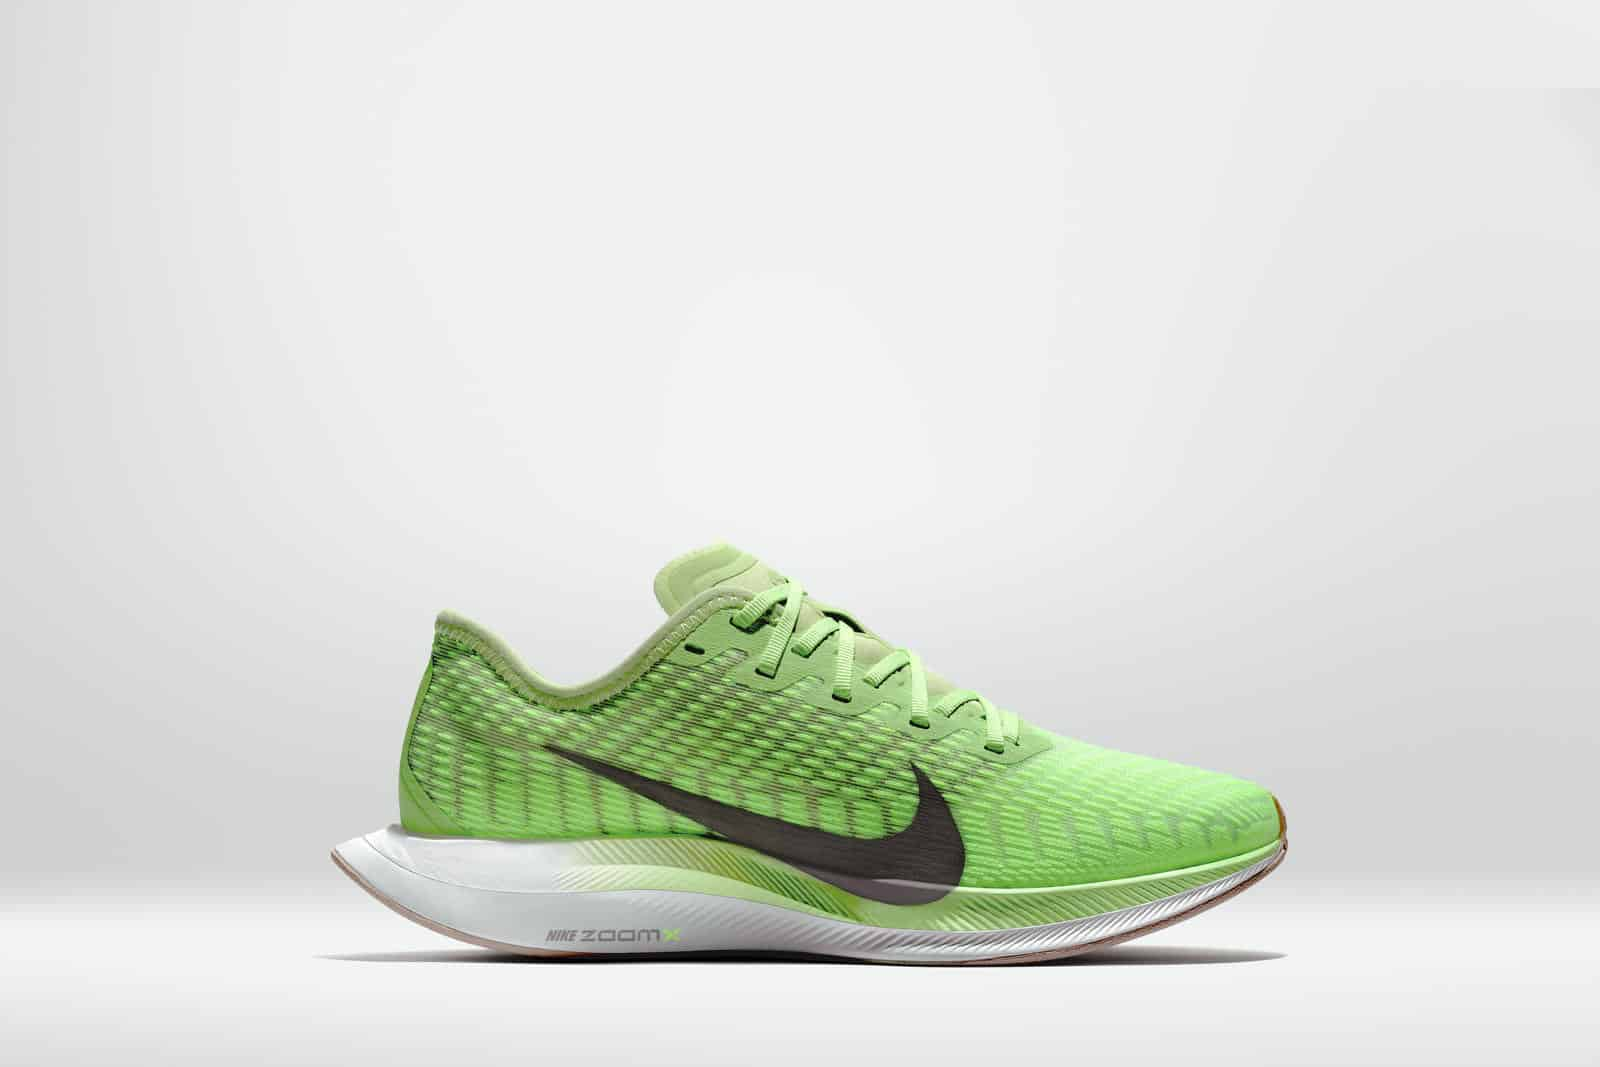 nike-fast-pack-pegasus-36-pegasus-turbo-zoom-fly-3-zoom-next%-19